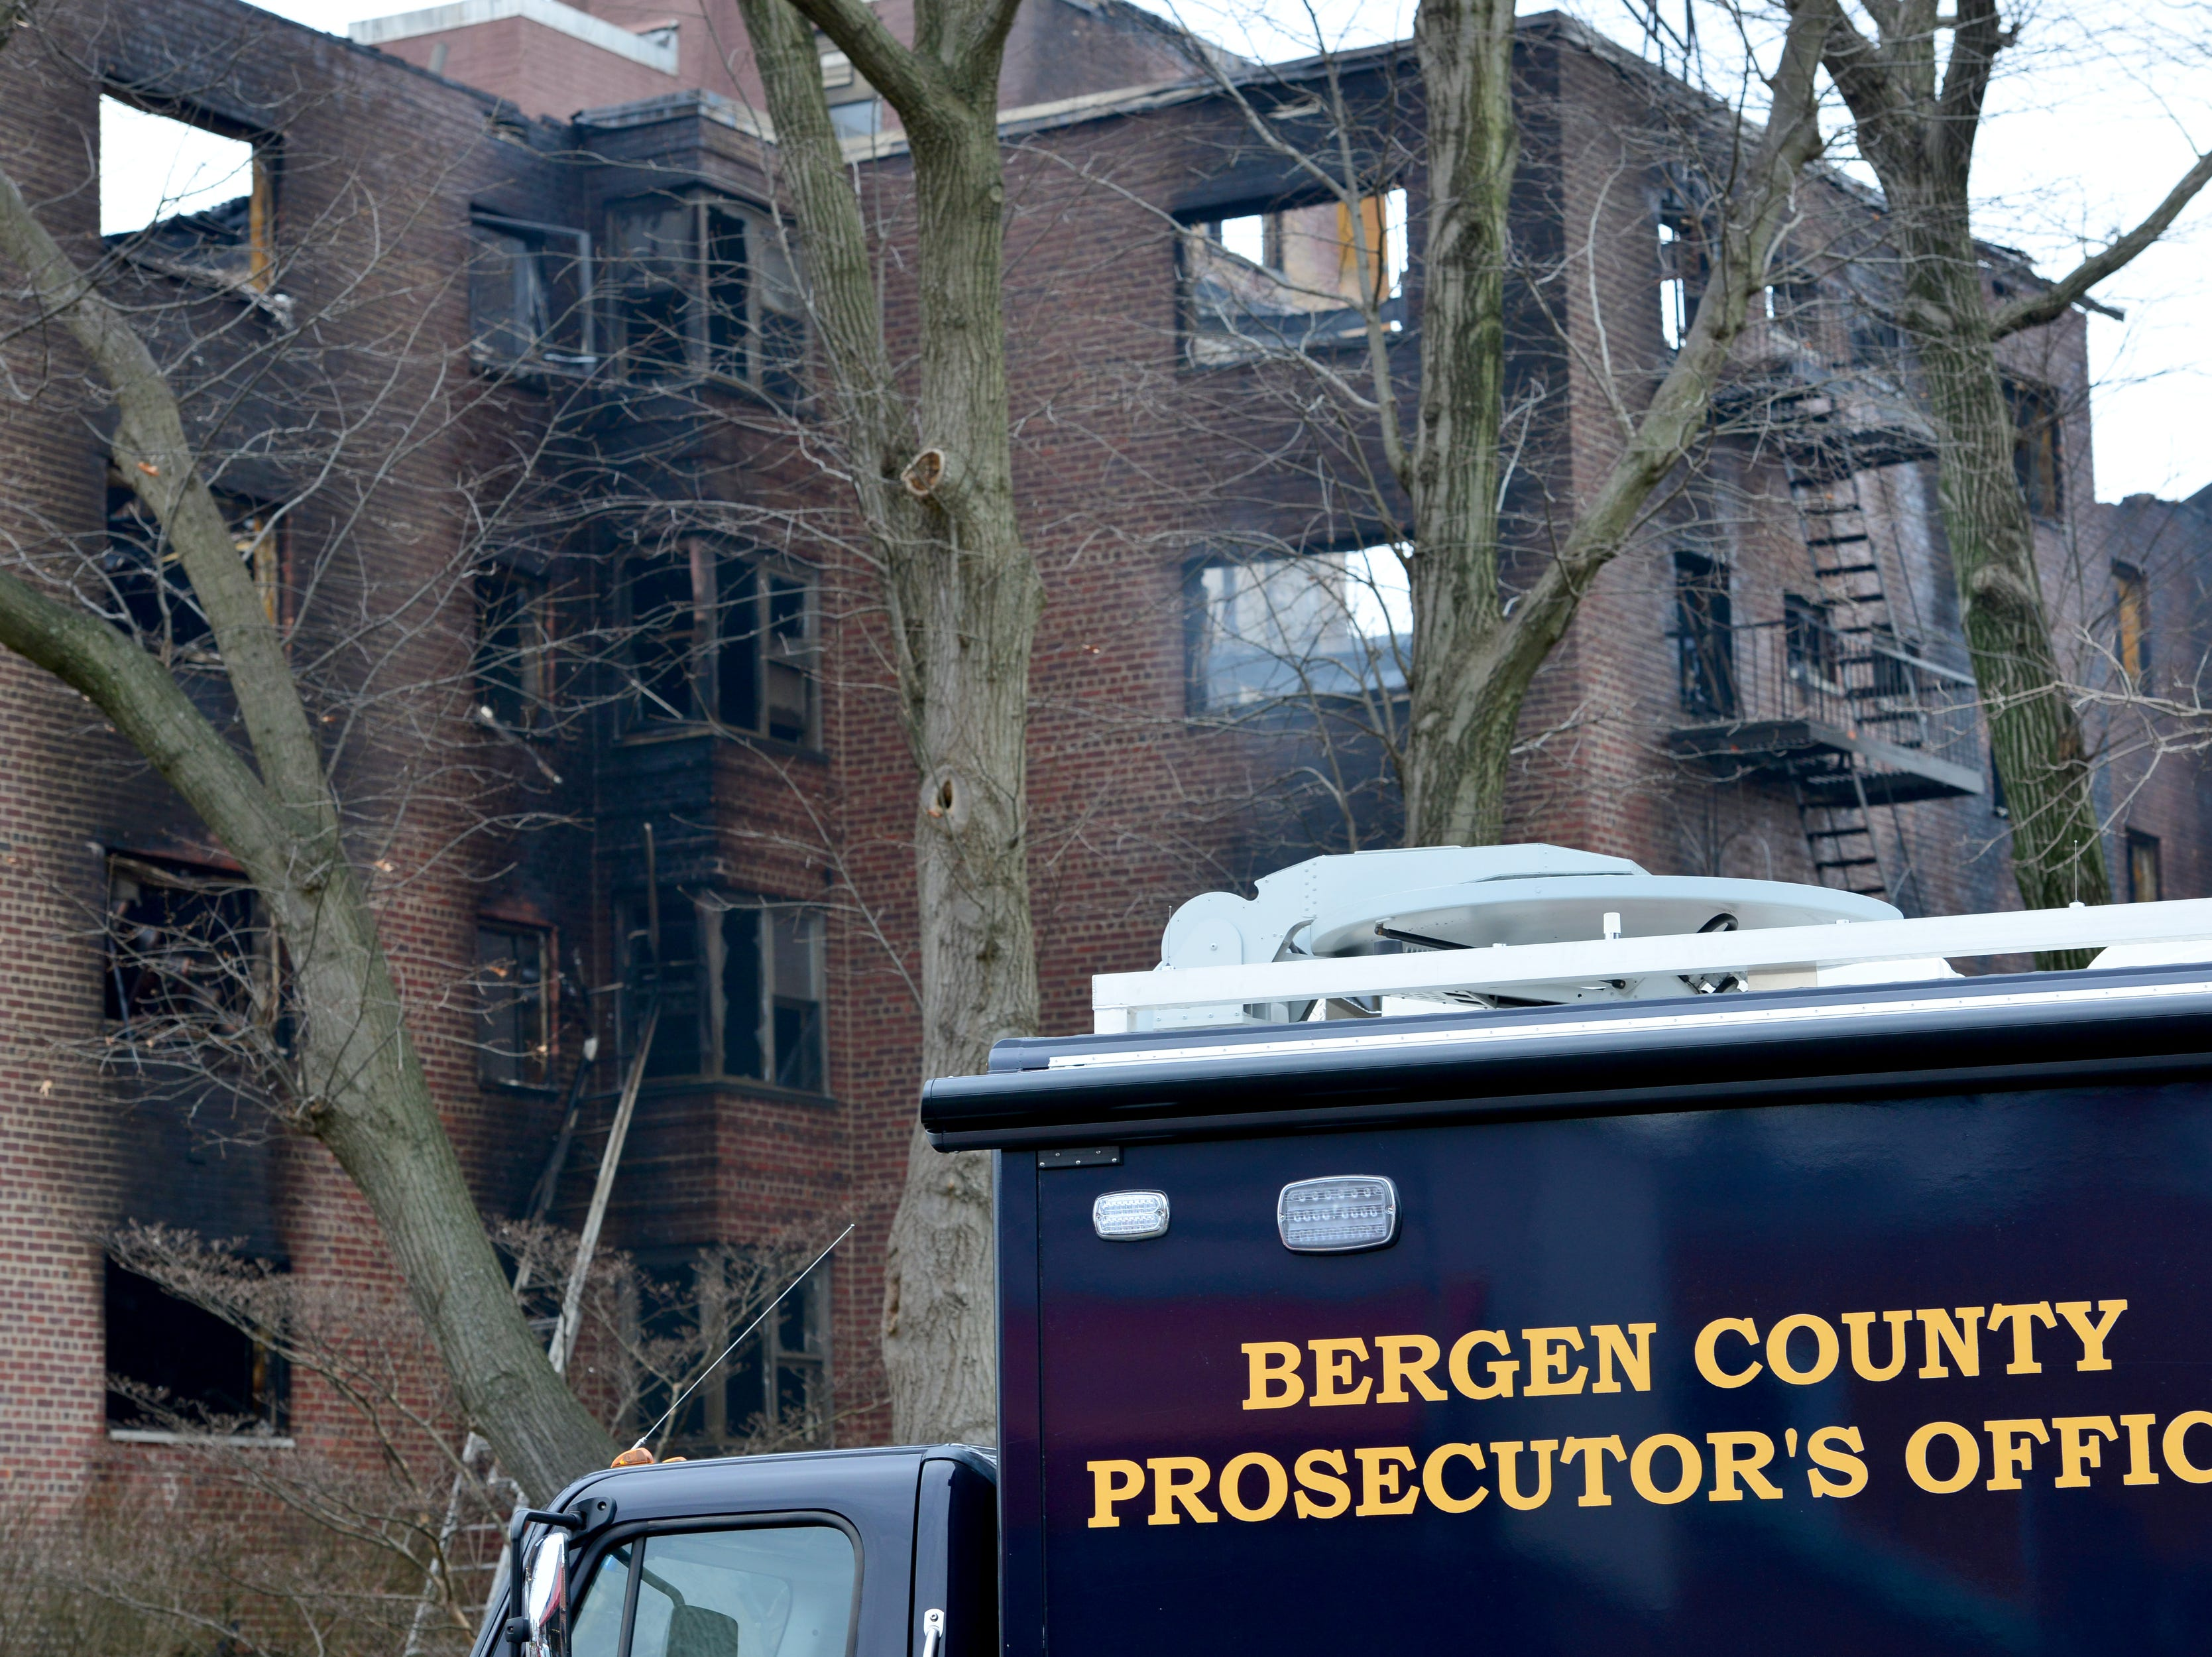 Bergen County Prosecutor's Office Arson Unit are at the scene of a multiple alarm fire that broke out at an apartment complex on Edwin Ave in Fort Lee.